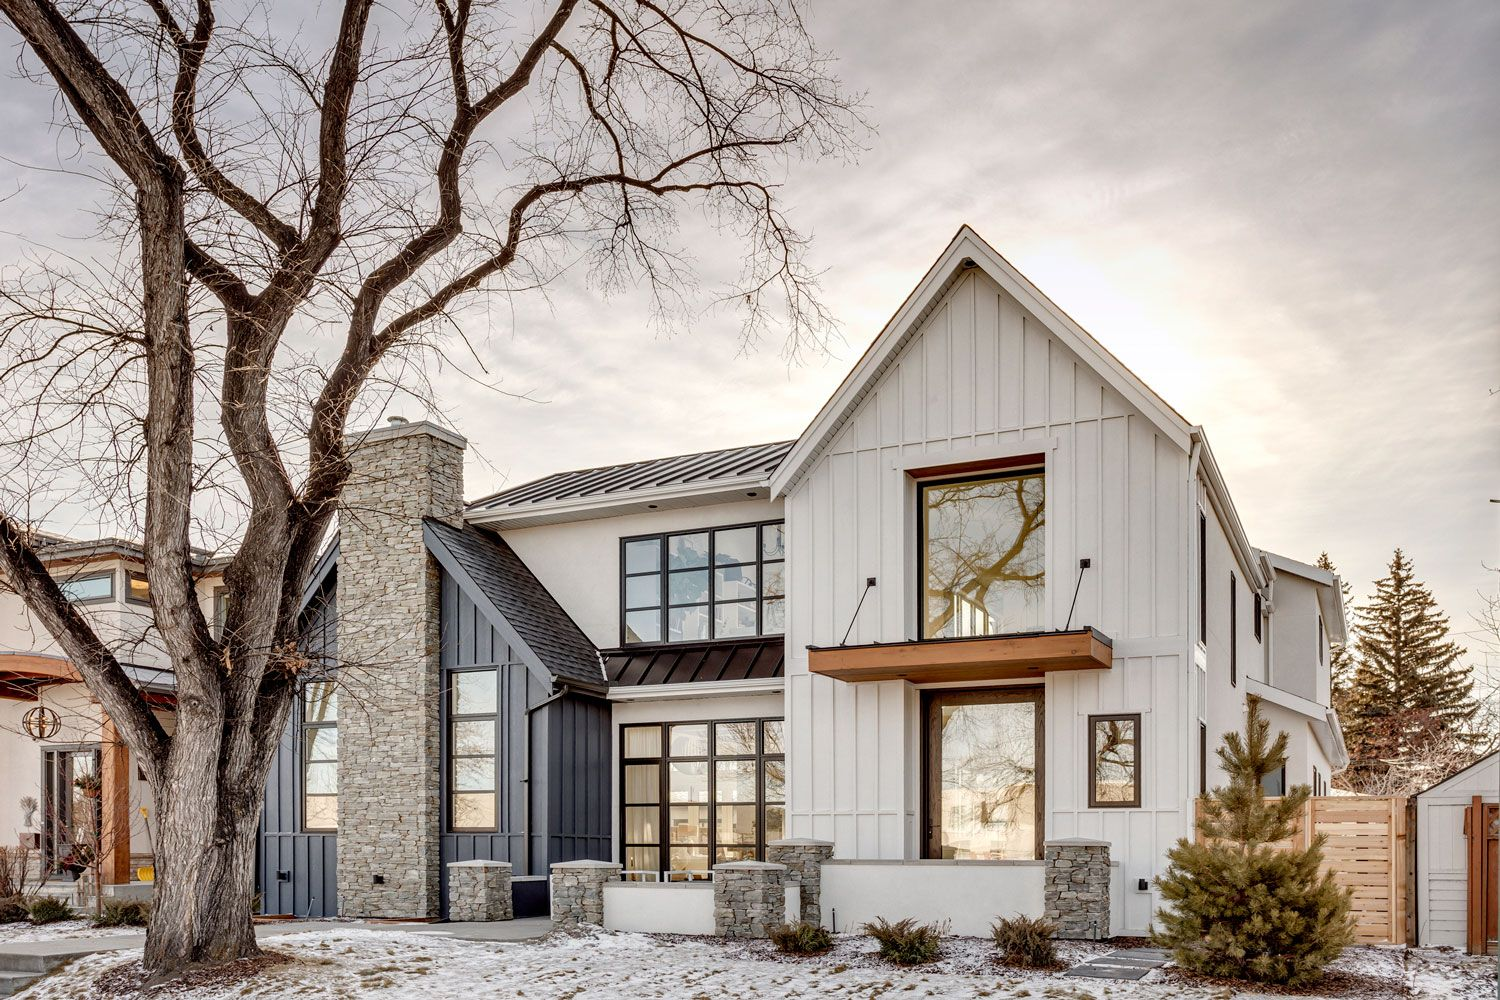 Roofing and canopy details - modern farmhouse style #exteriordesign